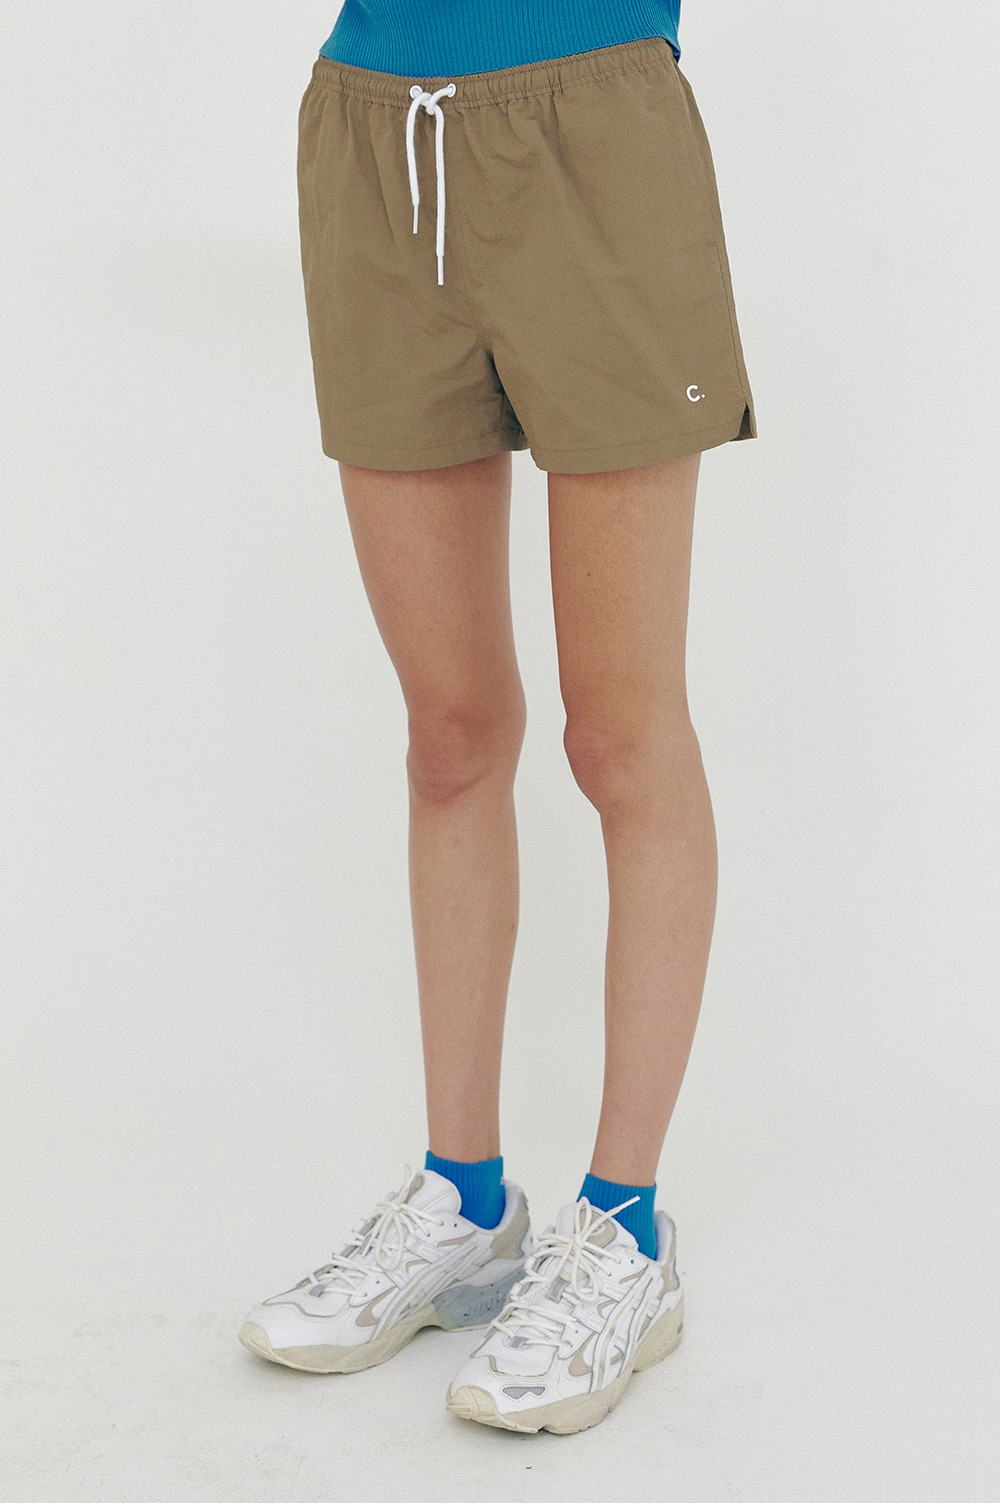 clove - [SS21 clove] New Summer Shorts_Women Khaki